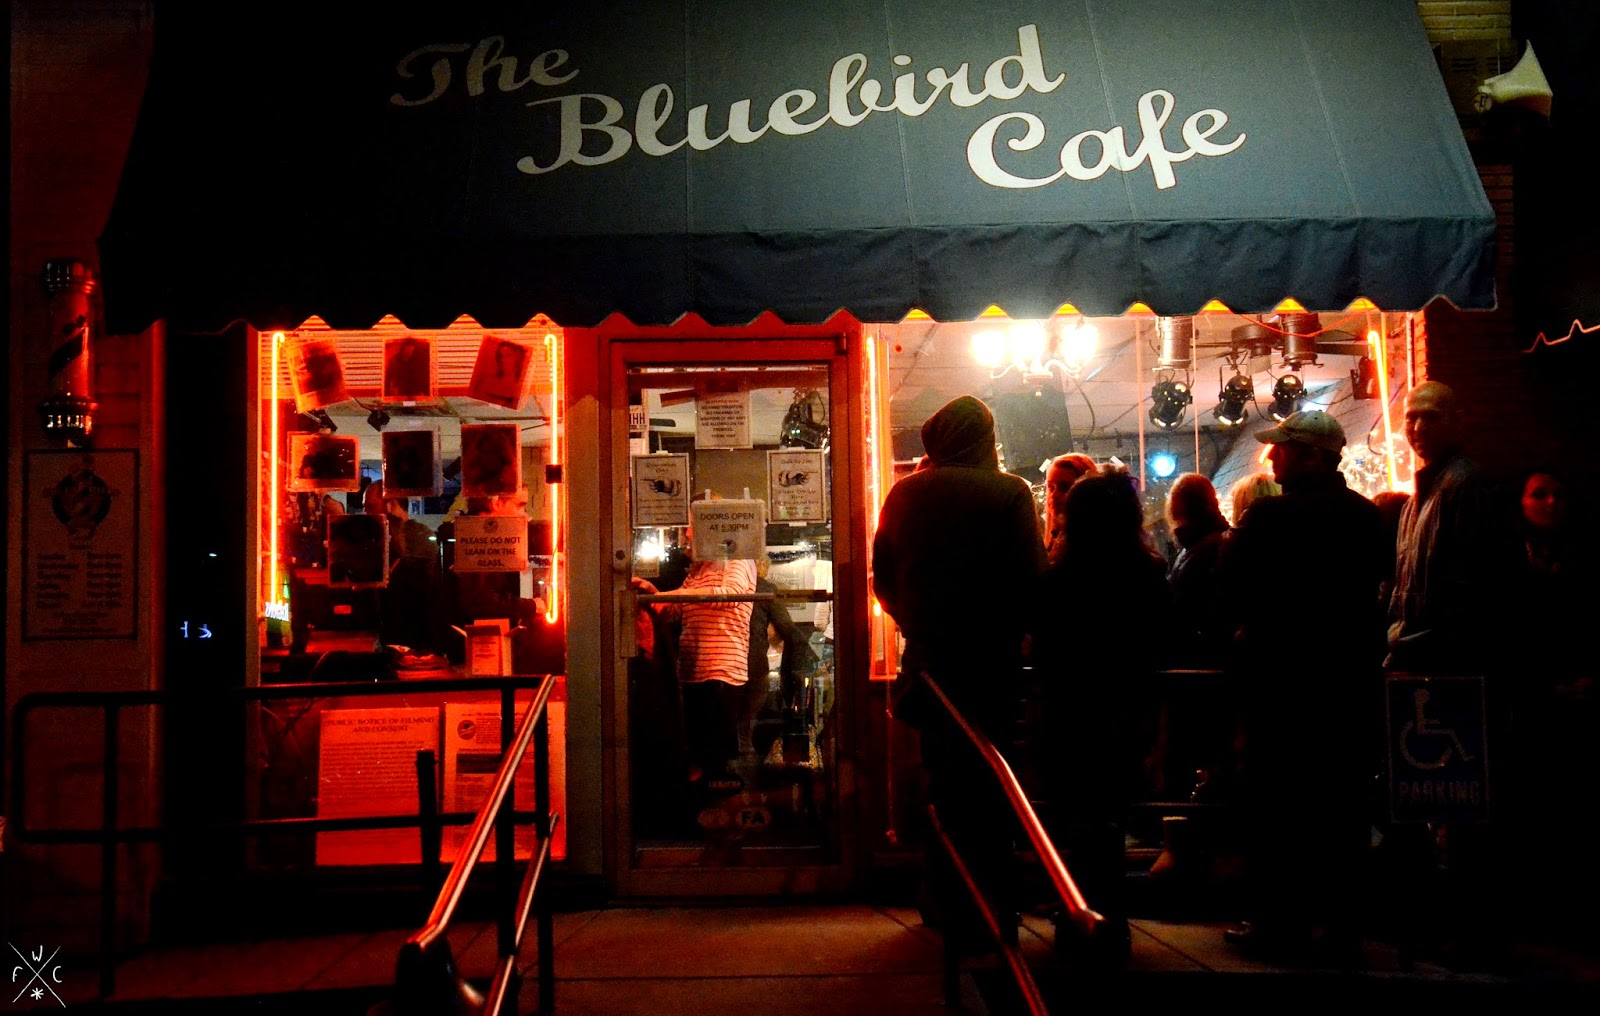 The Bluebird Cafe, Nashville, Tennessee, USA